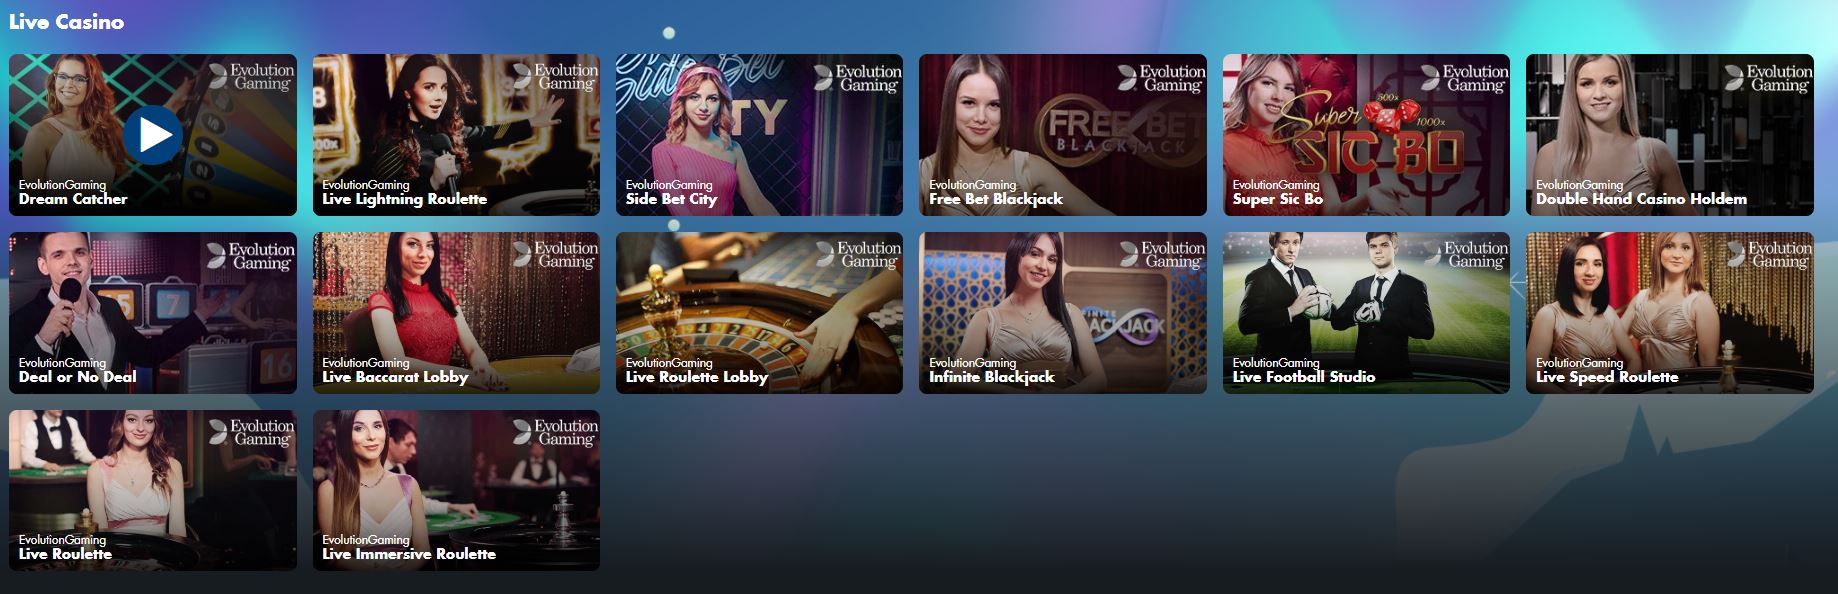 Live Casino Lobby at Scandibet